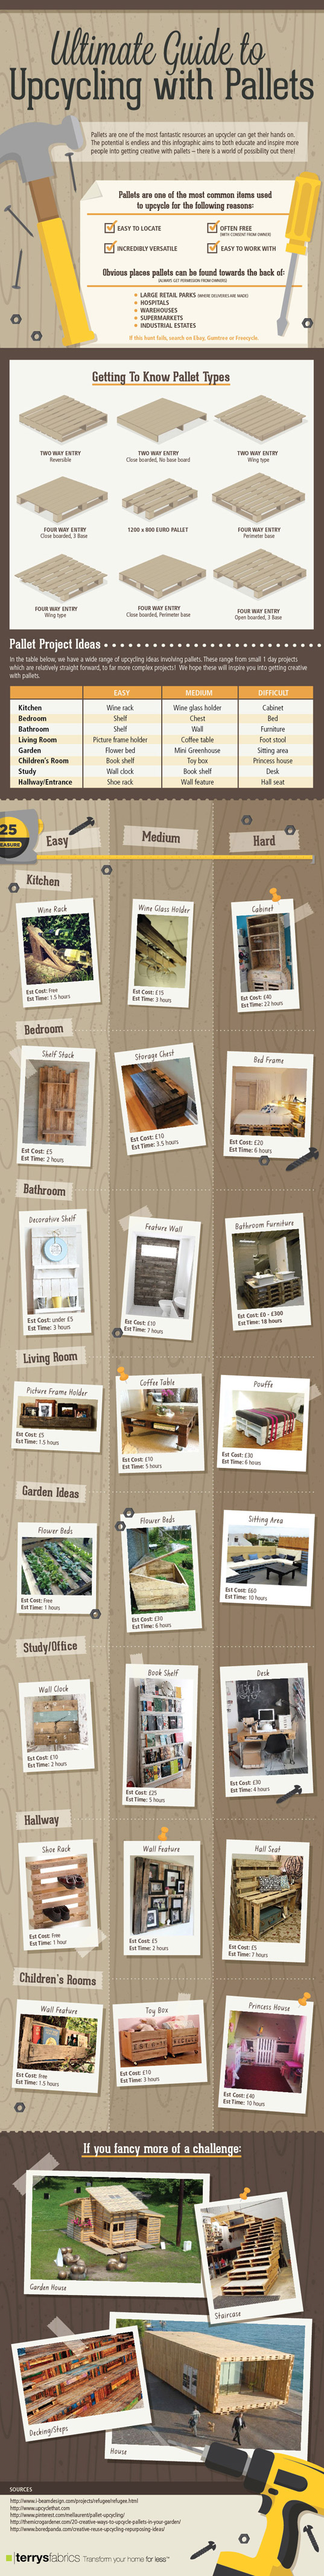 upcycling pallets infographic